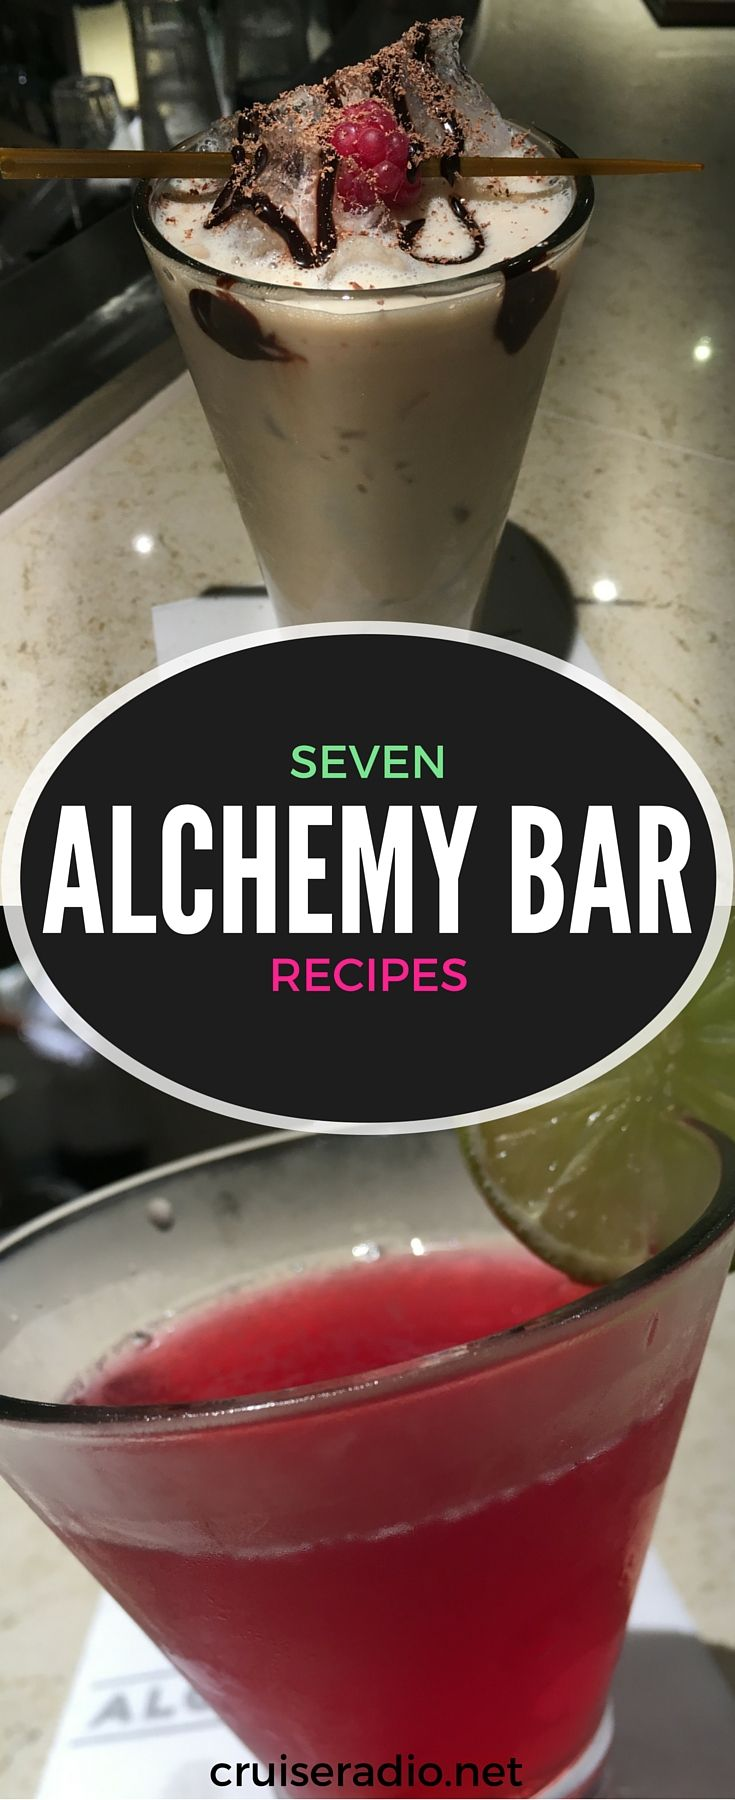 Alchemy Bar Recipes #bar #drinks #recipe #recipes #carnival #cruise #vacation #cocktail #cruising